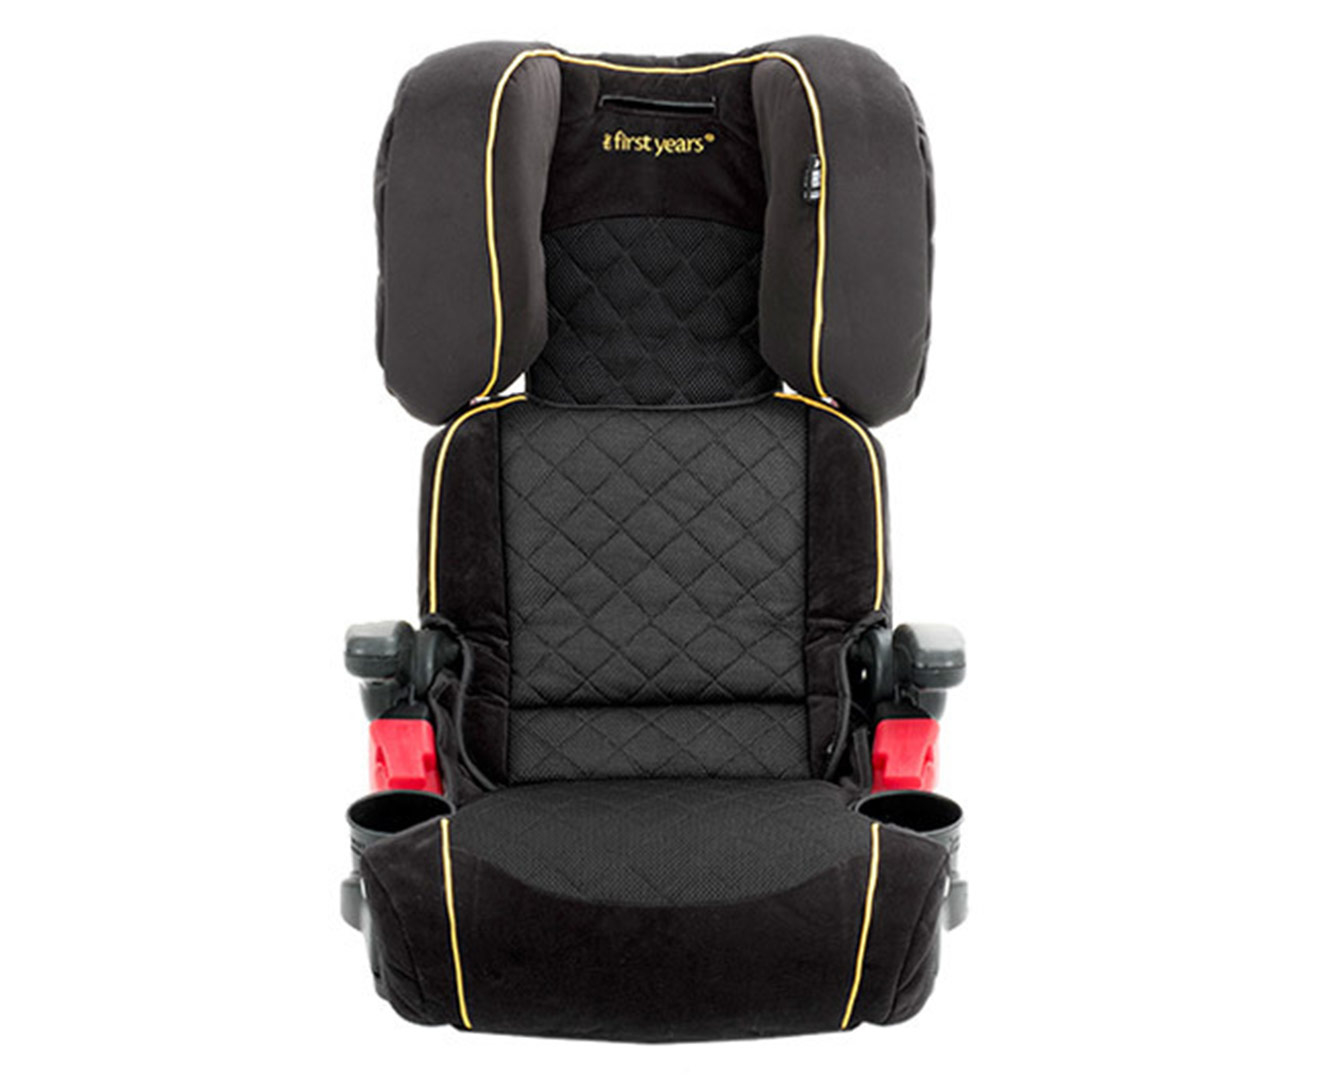 The First Years Adjustable Car Booster Seat Bumble Bee  : 55f0cd4938585633611202 from www.catch.com.au size 1320 x 1080 jpeg 204kB